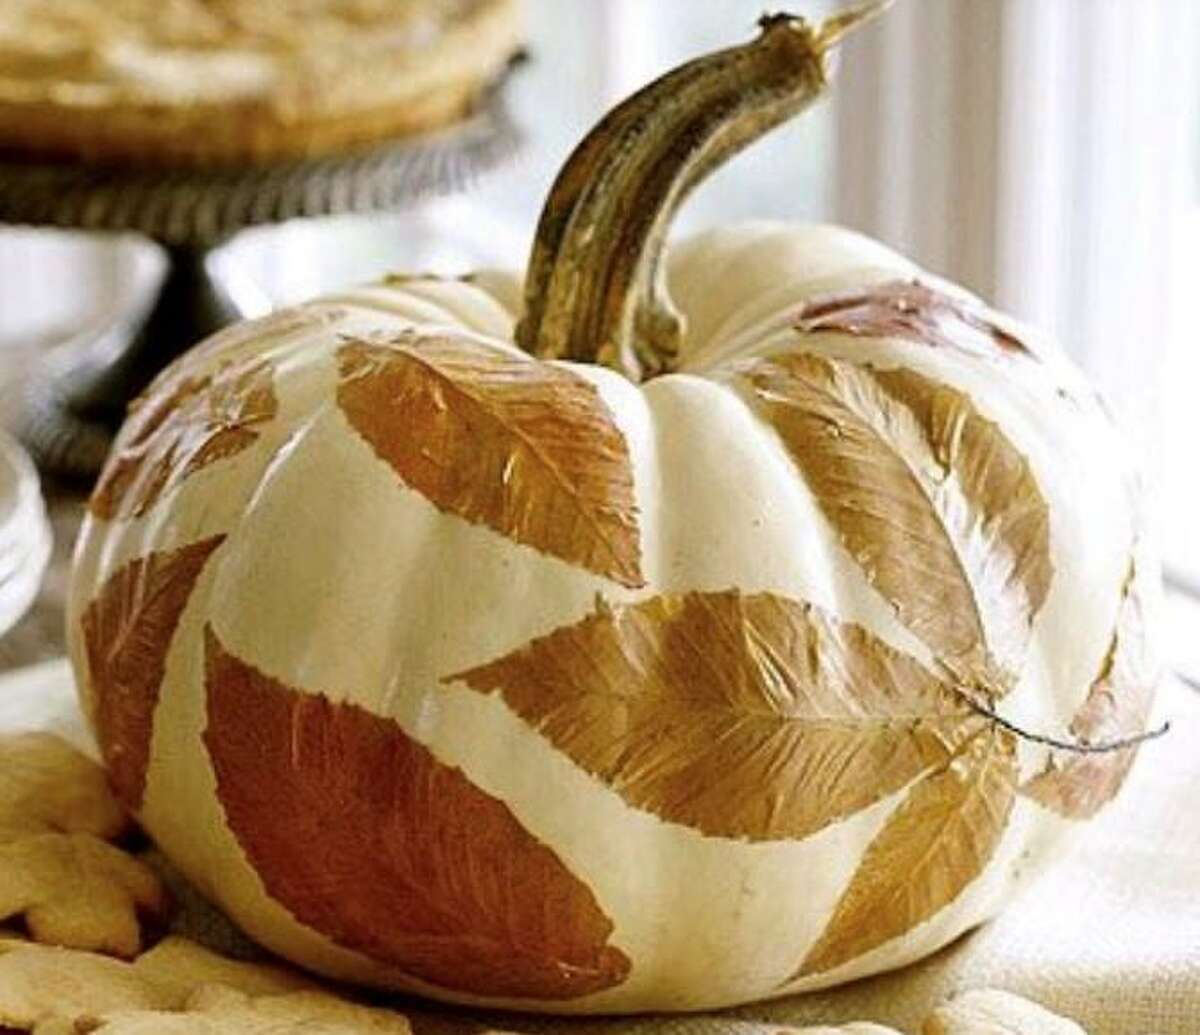 A leafy pumpkin is one option for decorating at the Wilton Historical Society on Oct. 17, 2020.